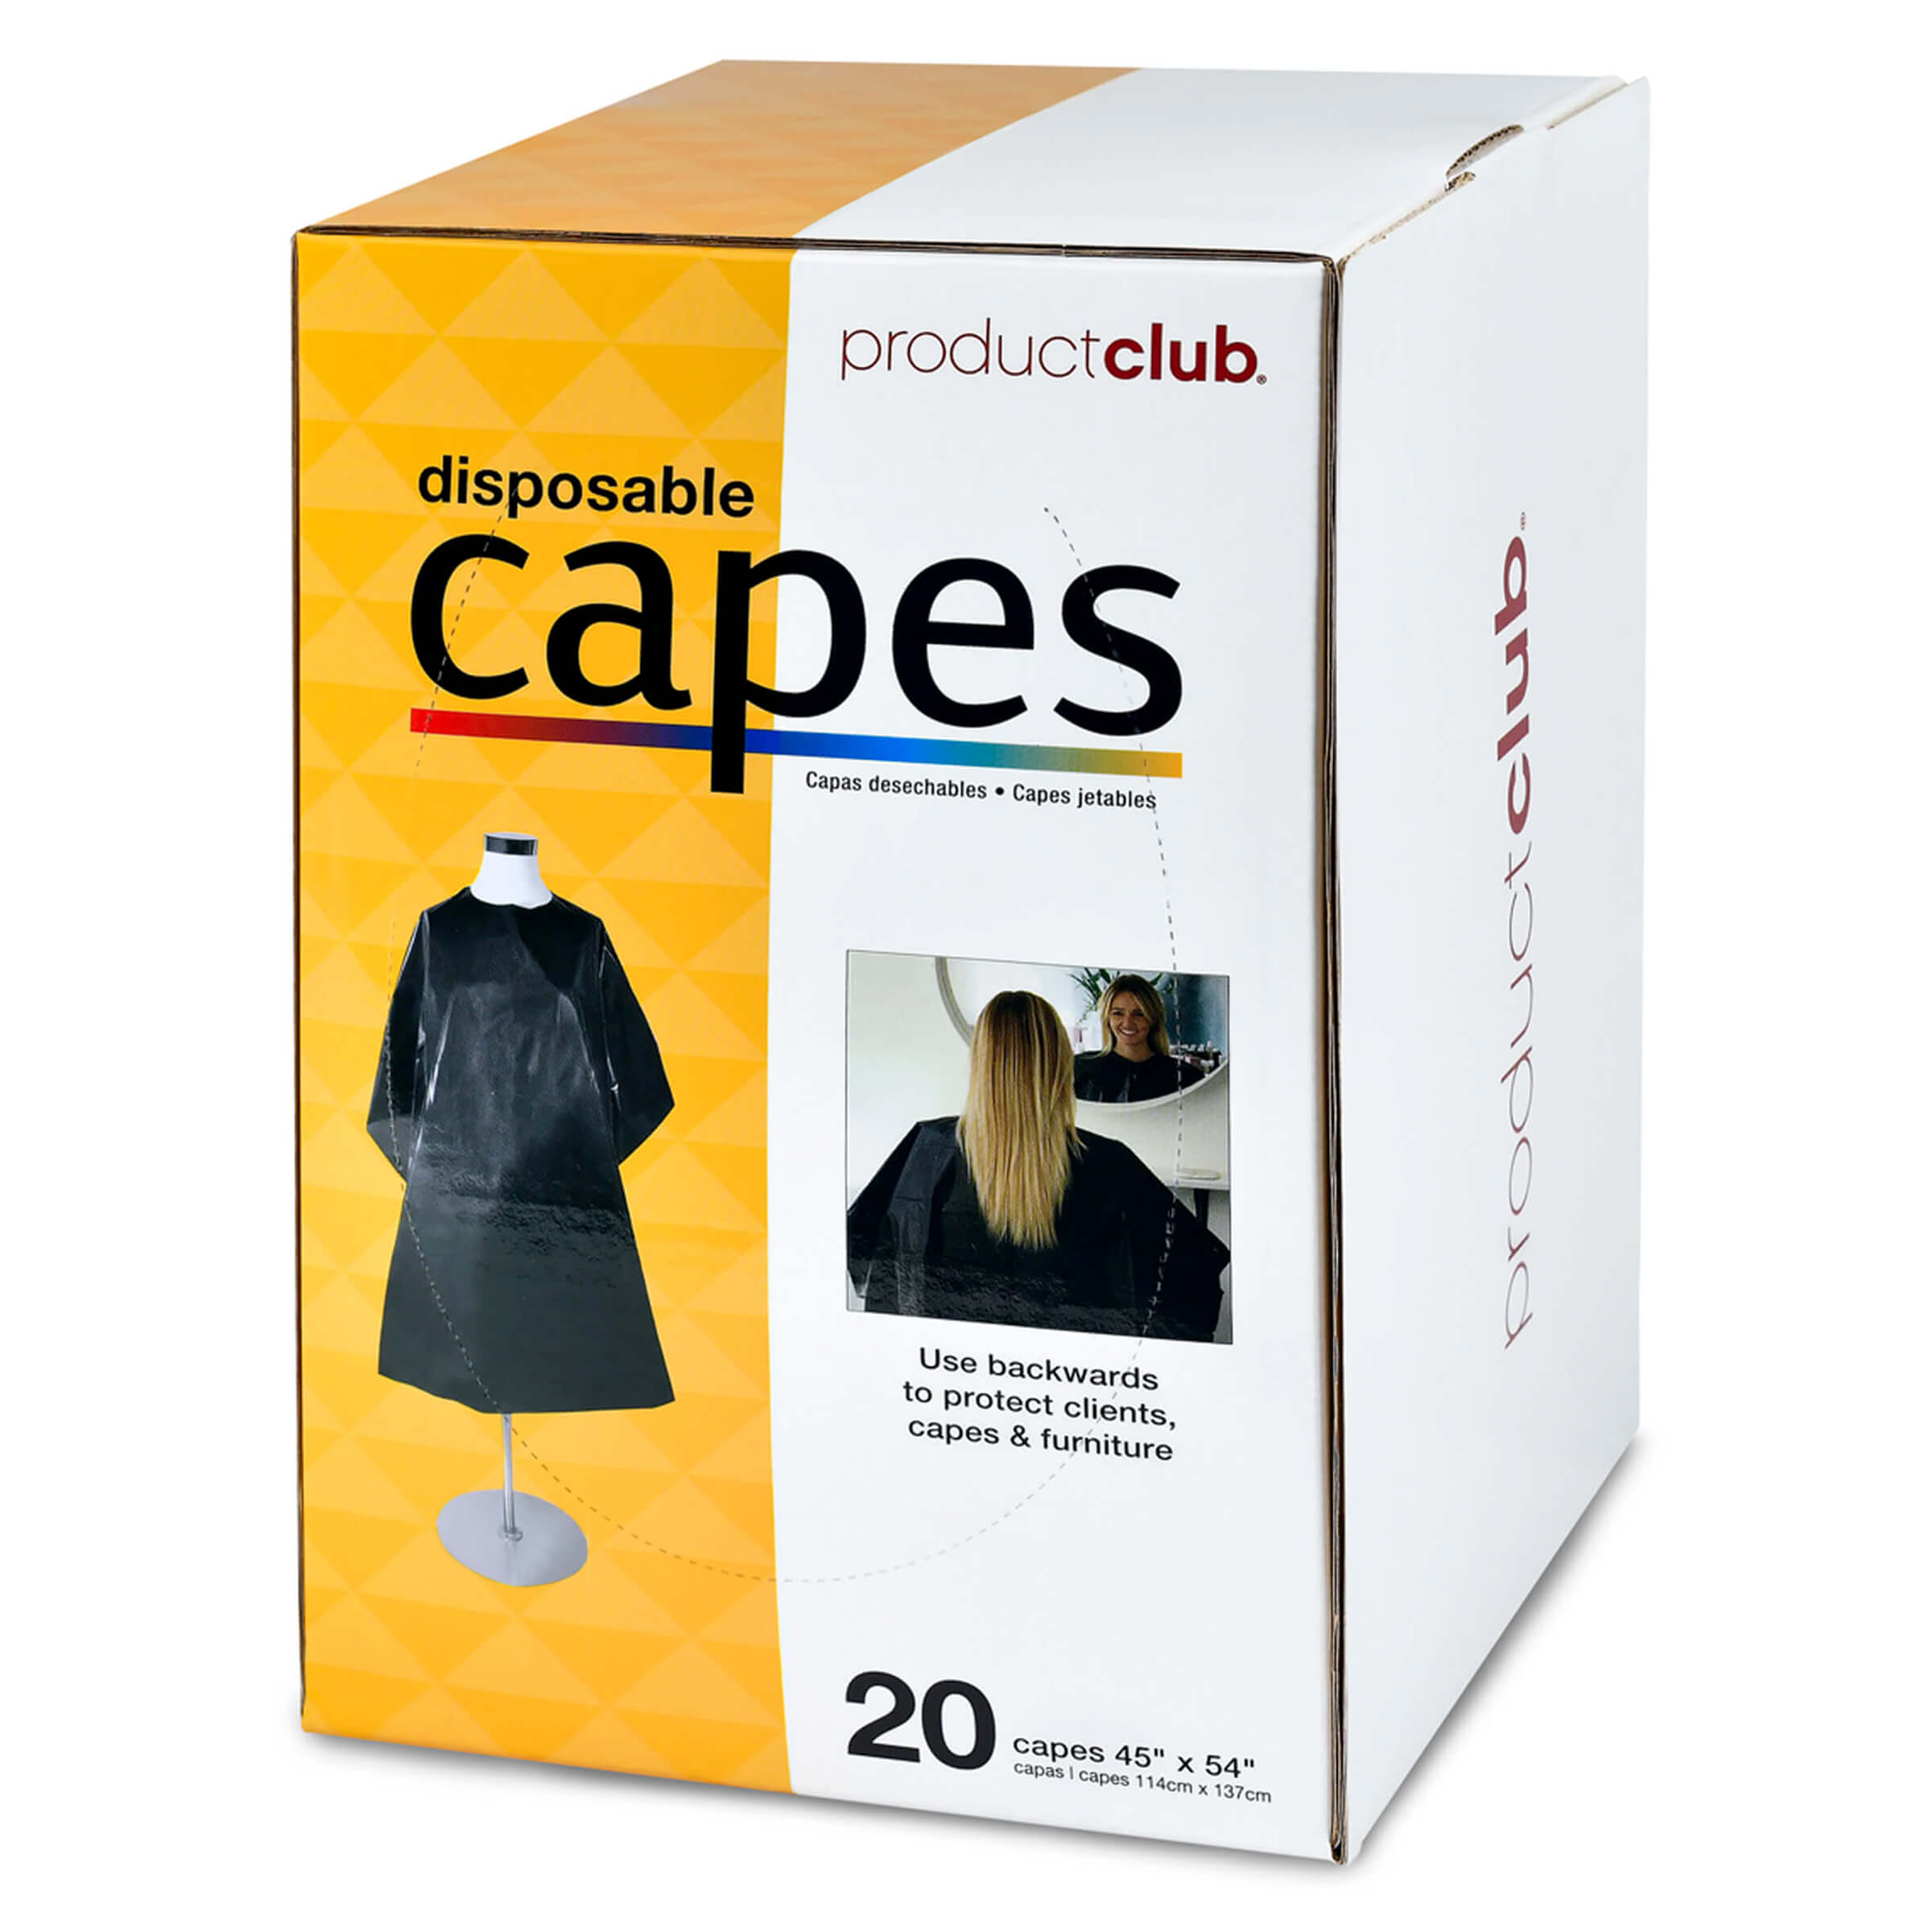 DC-20DB-a-disposable-capes-ppe-salon-l.jpg